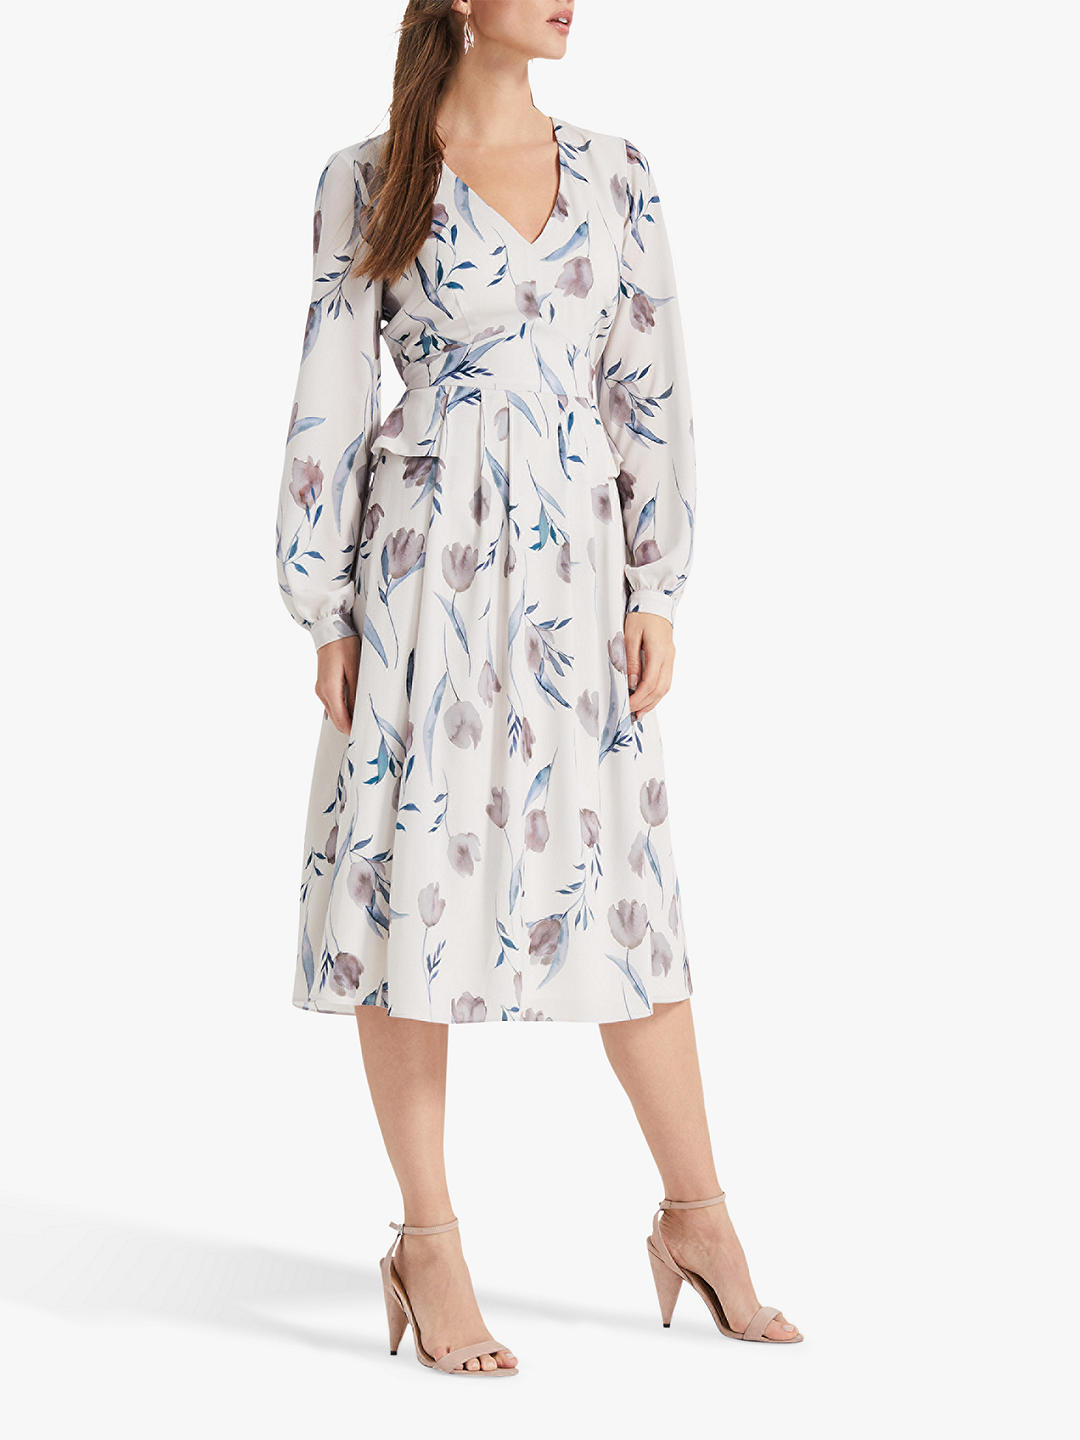 Phase Eight Emanuella Floral Printed Dress